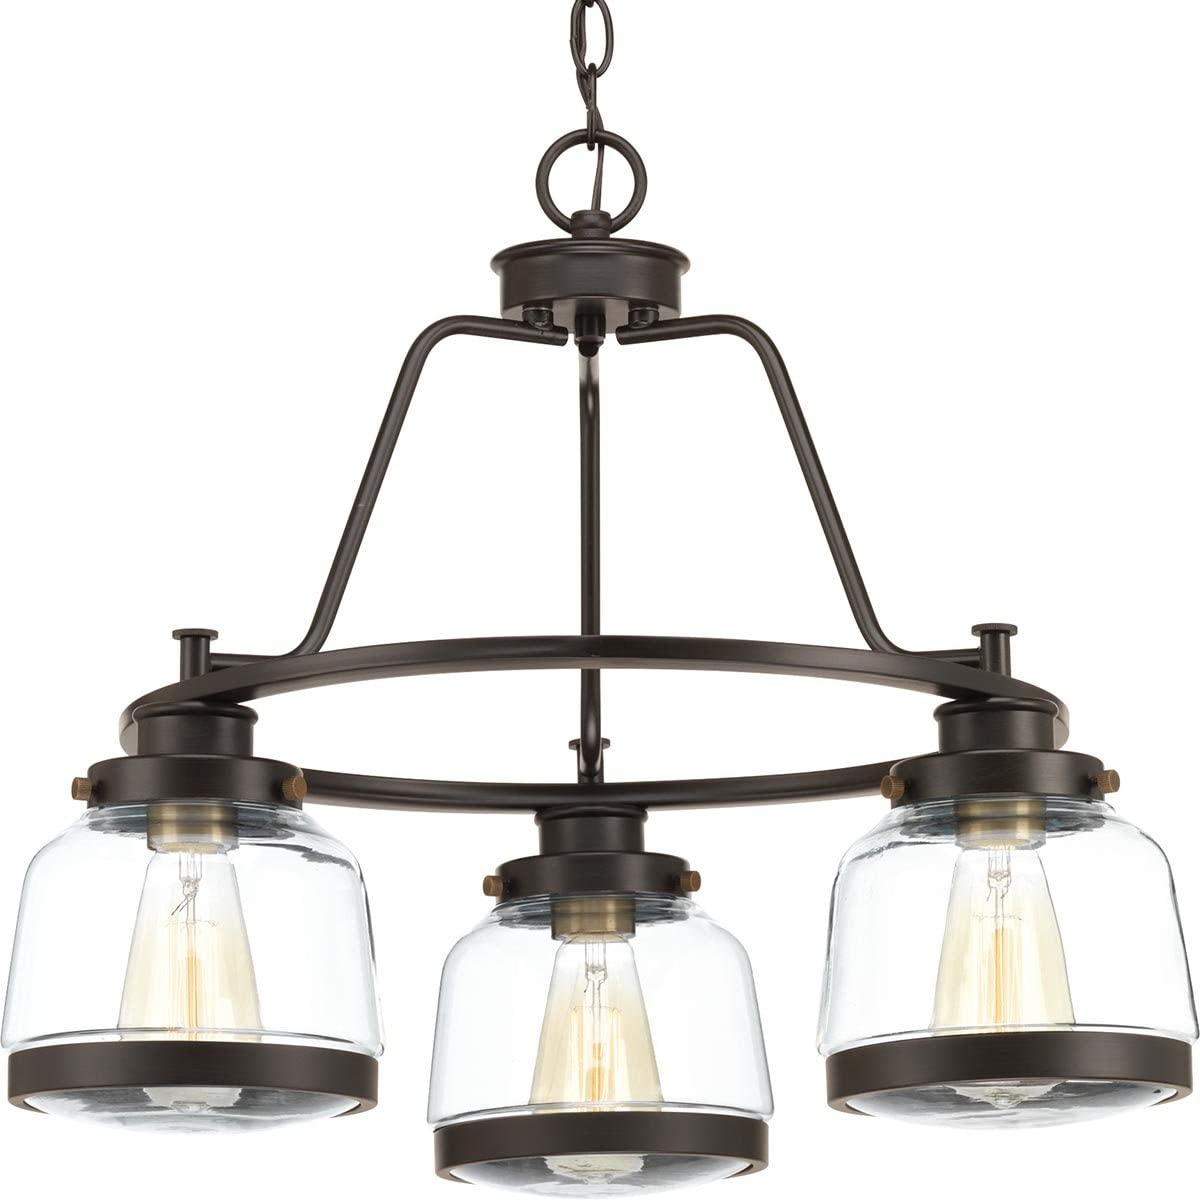 Progress Lighting P400057-020 Judson Three-Light Chandelier, Antique Bronze